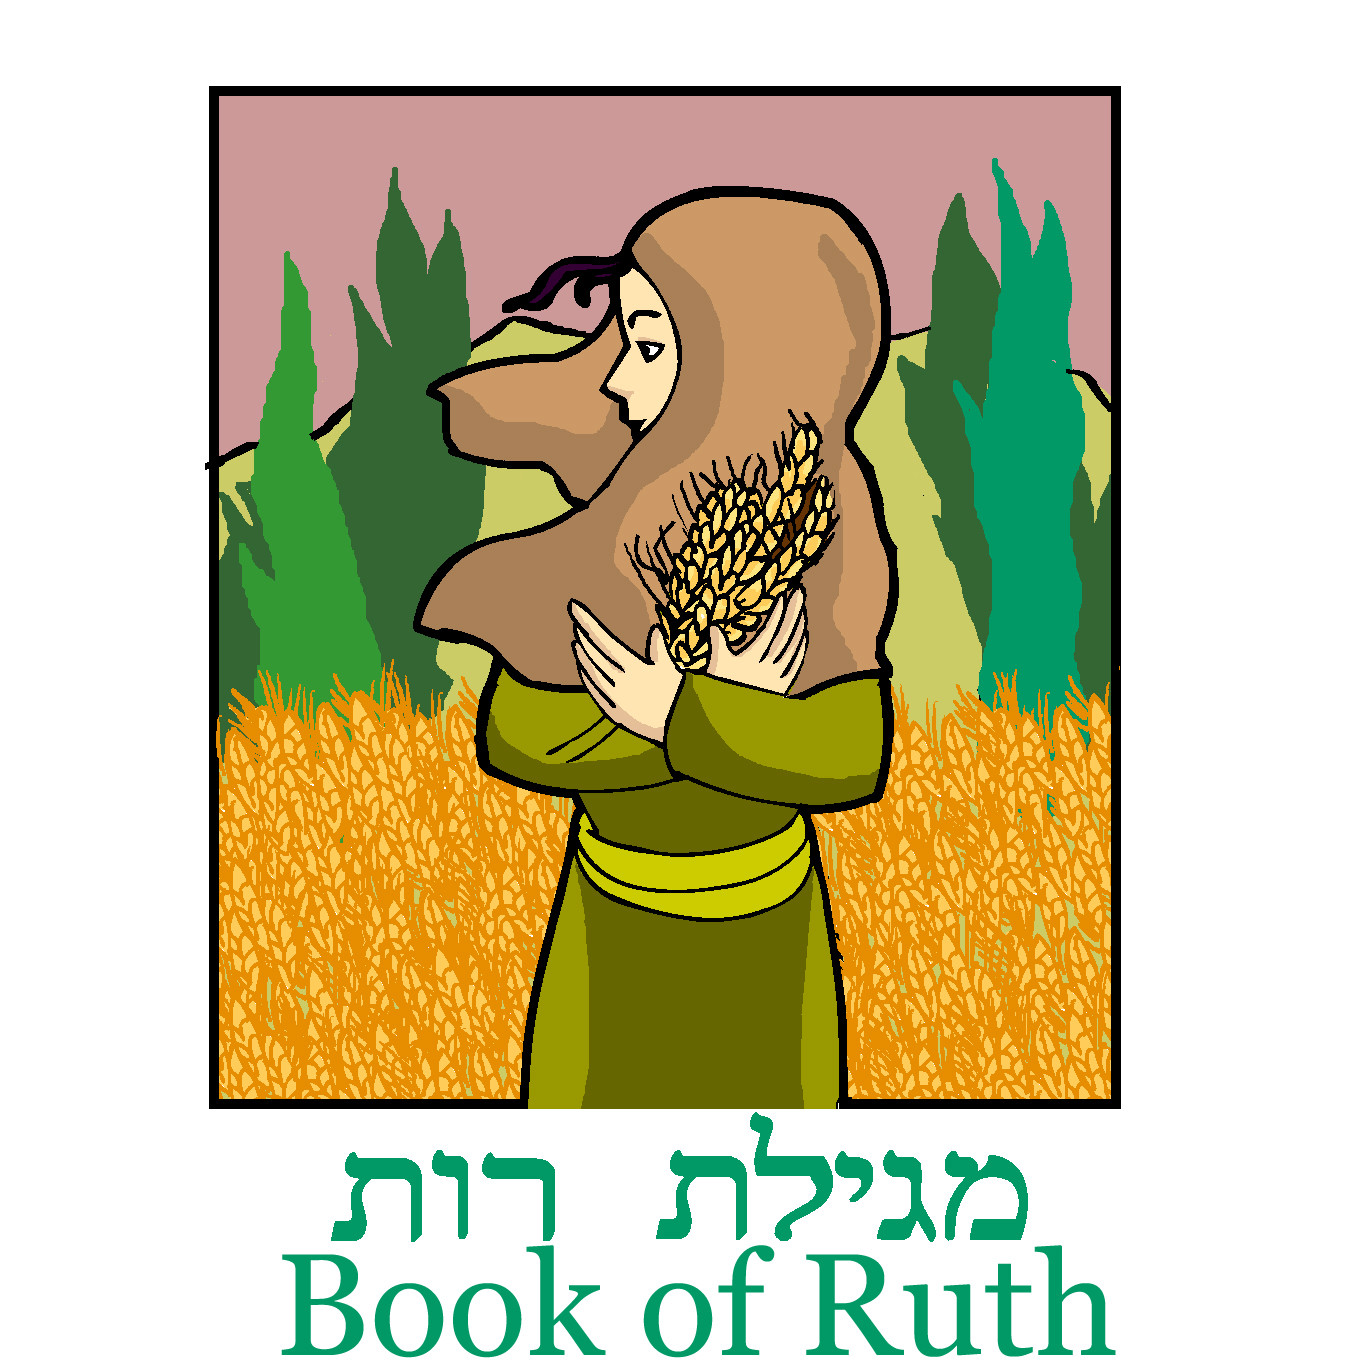 Ruth And Naomi Clipart at GetDrawings com | Free for